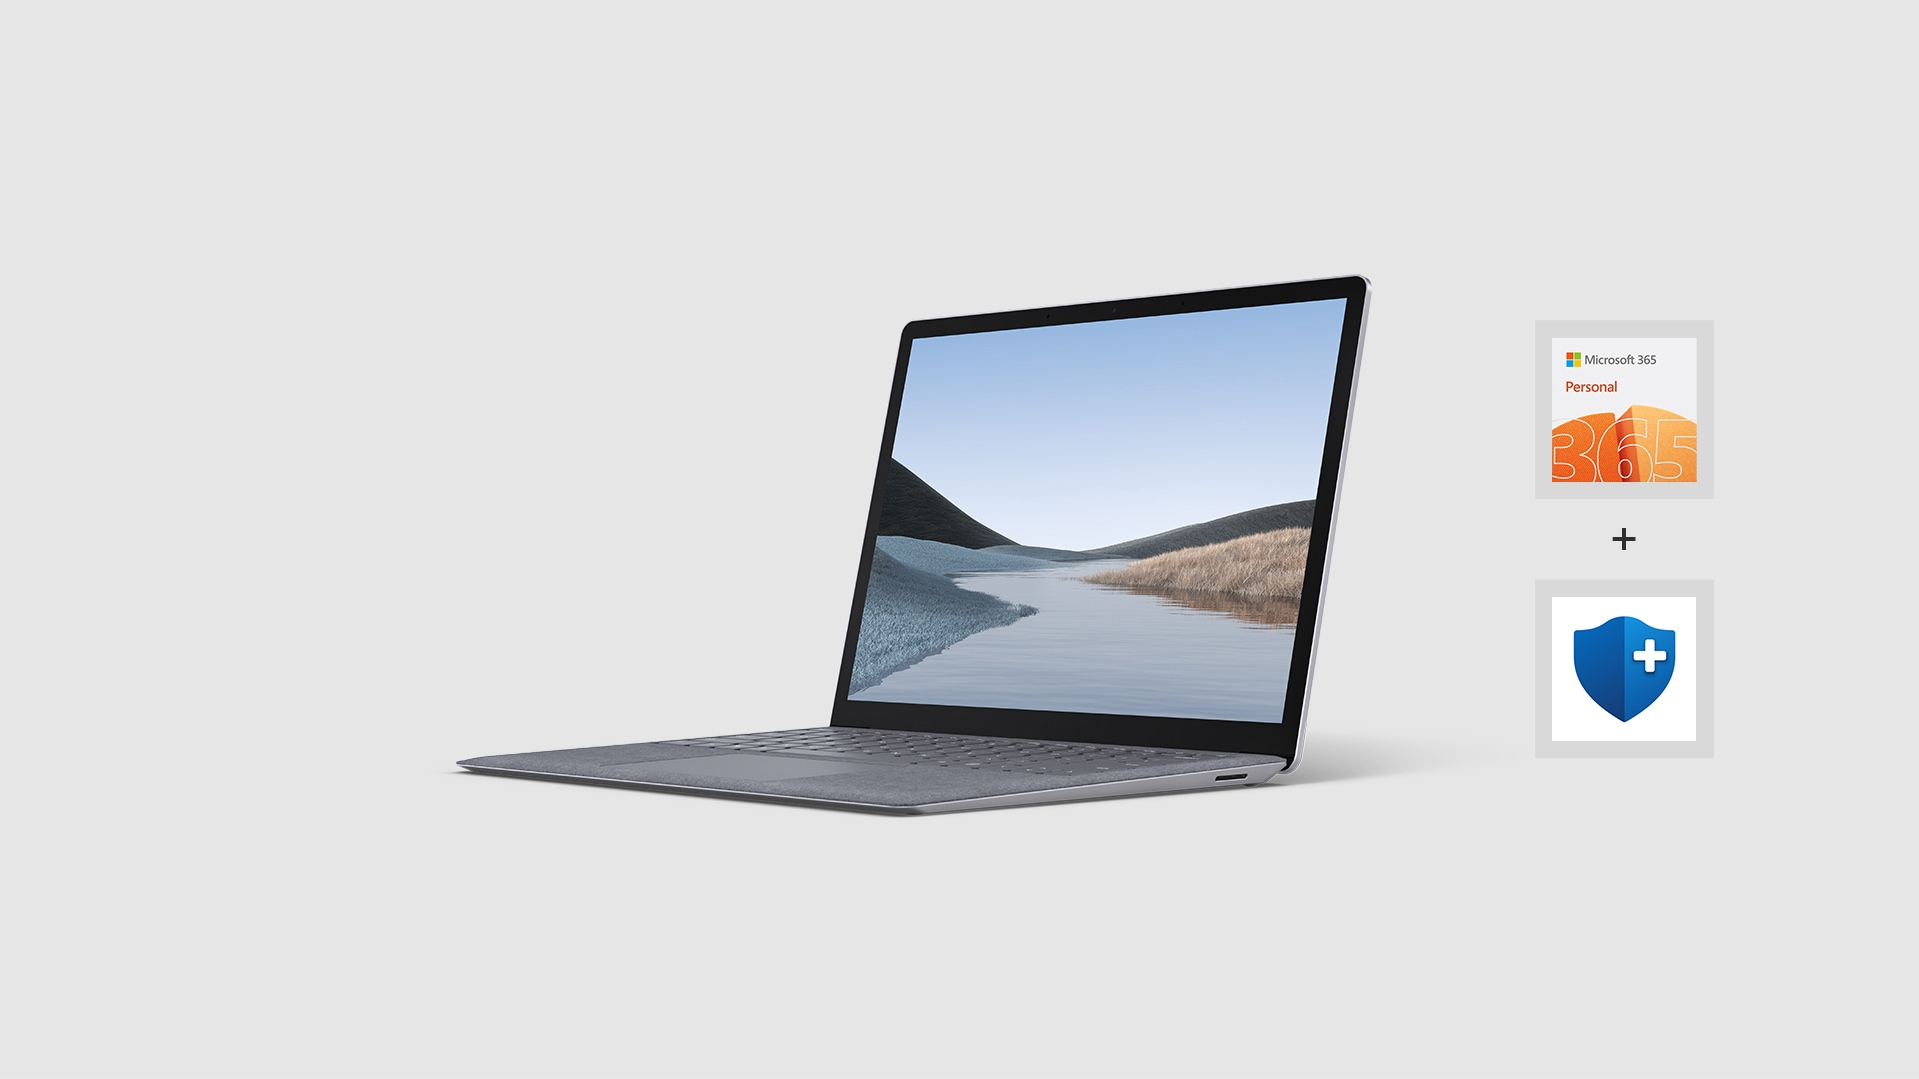 Surface Latop 3, Microsoft 365 Personal logo, and Microsoft Complete for Surface Laptop logo.